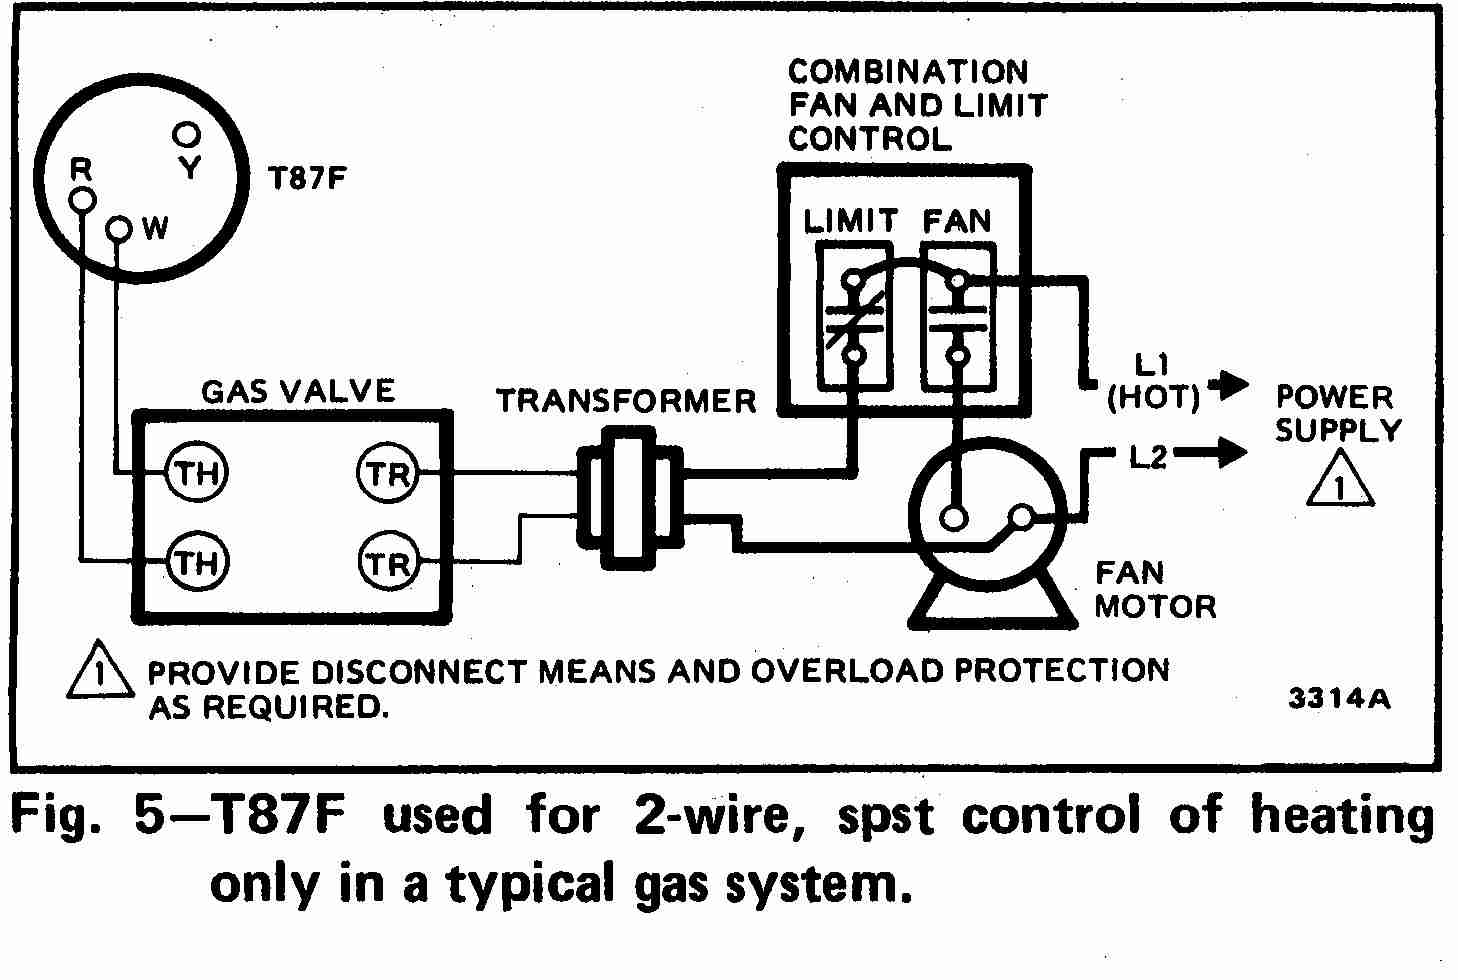 TT_T87F_0002_2Wg_DJF guide to wiring connections for room thermostats intertherm thermostat wiring diagram at n-0.co